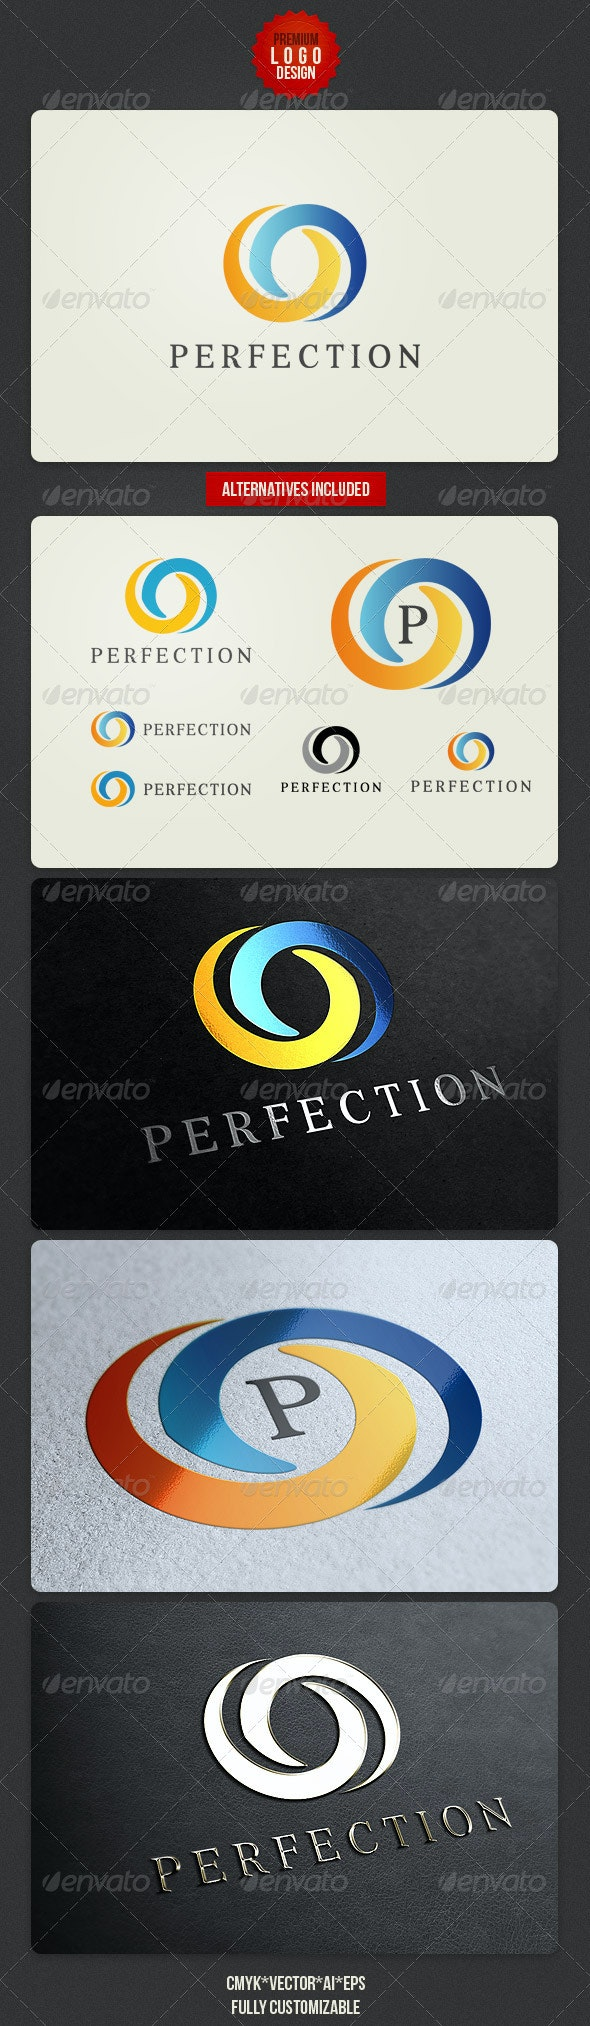 Classy and Clean Logo Design - Abstract Logo Templates